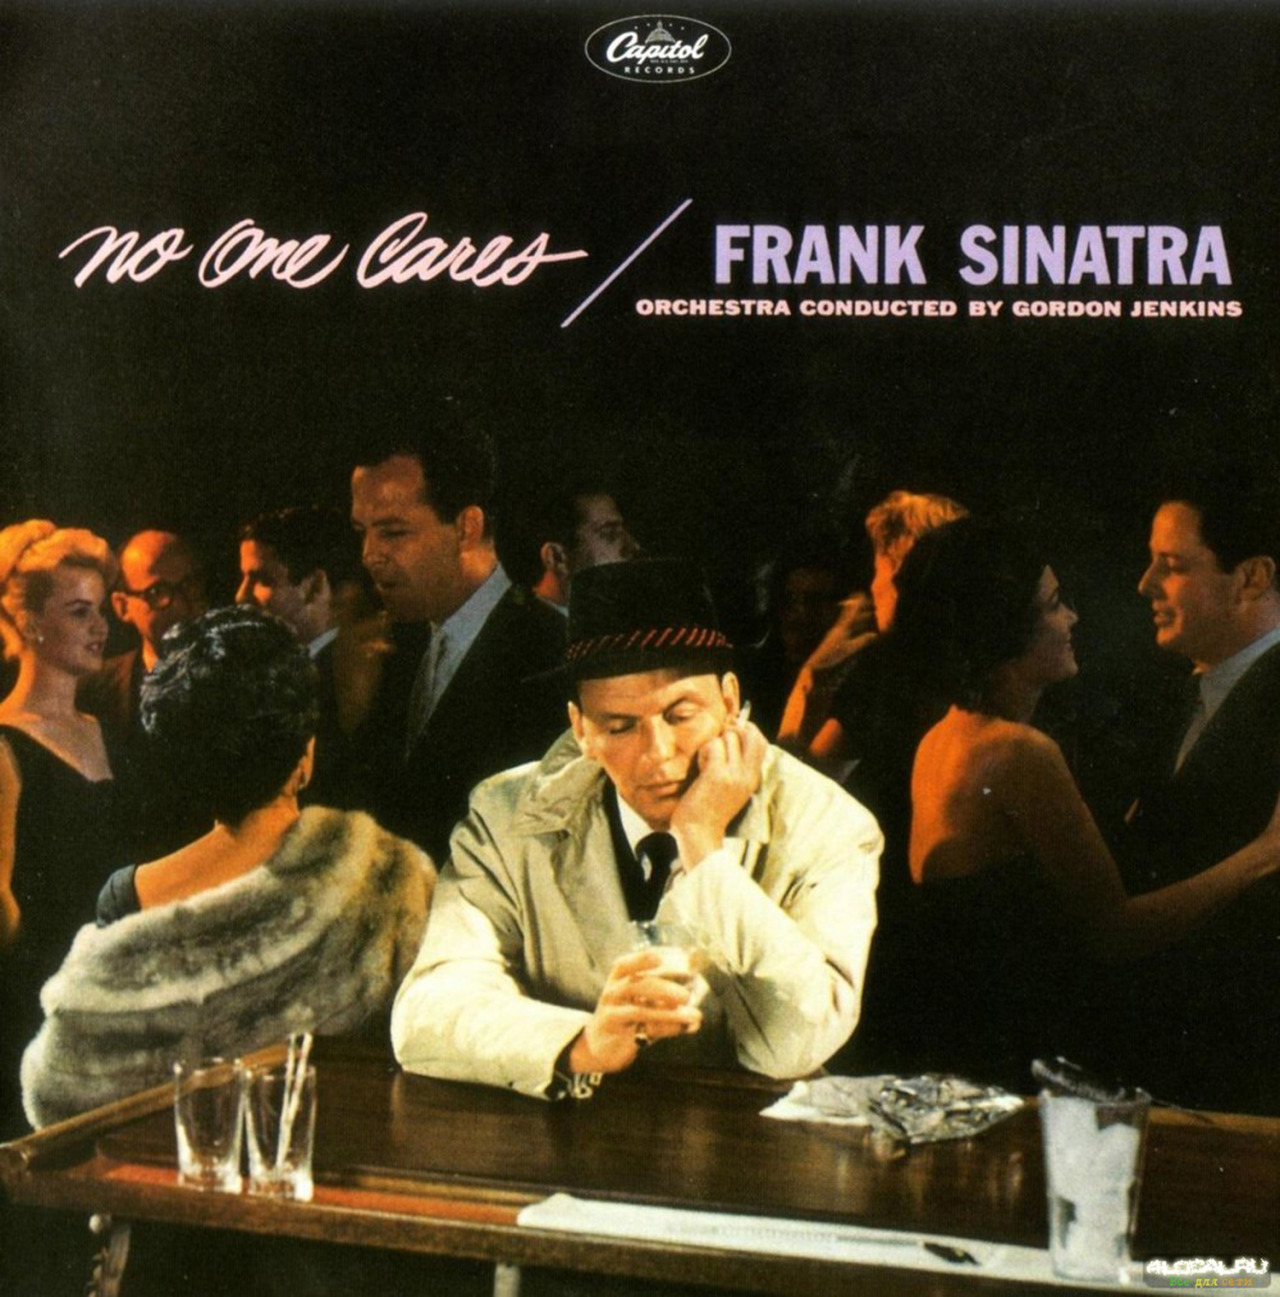 sleevesbythewhlgn: Artist: Directed by Frank Sinatra  Musician: Frank Sinatra Album: No One Cares Genre: Jazz / Pop Released: 1959